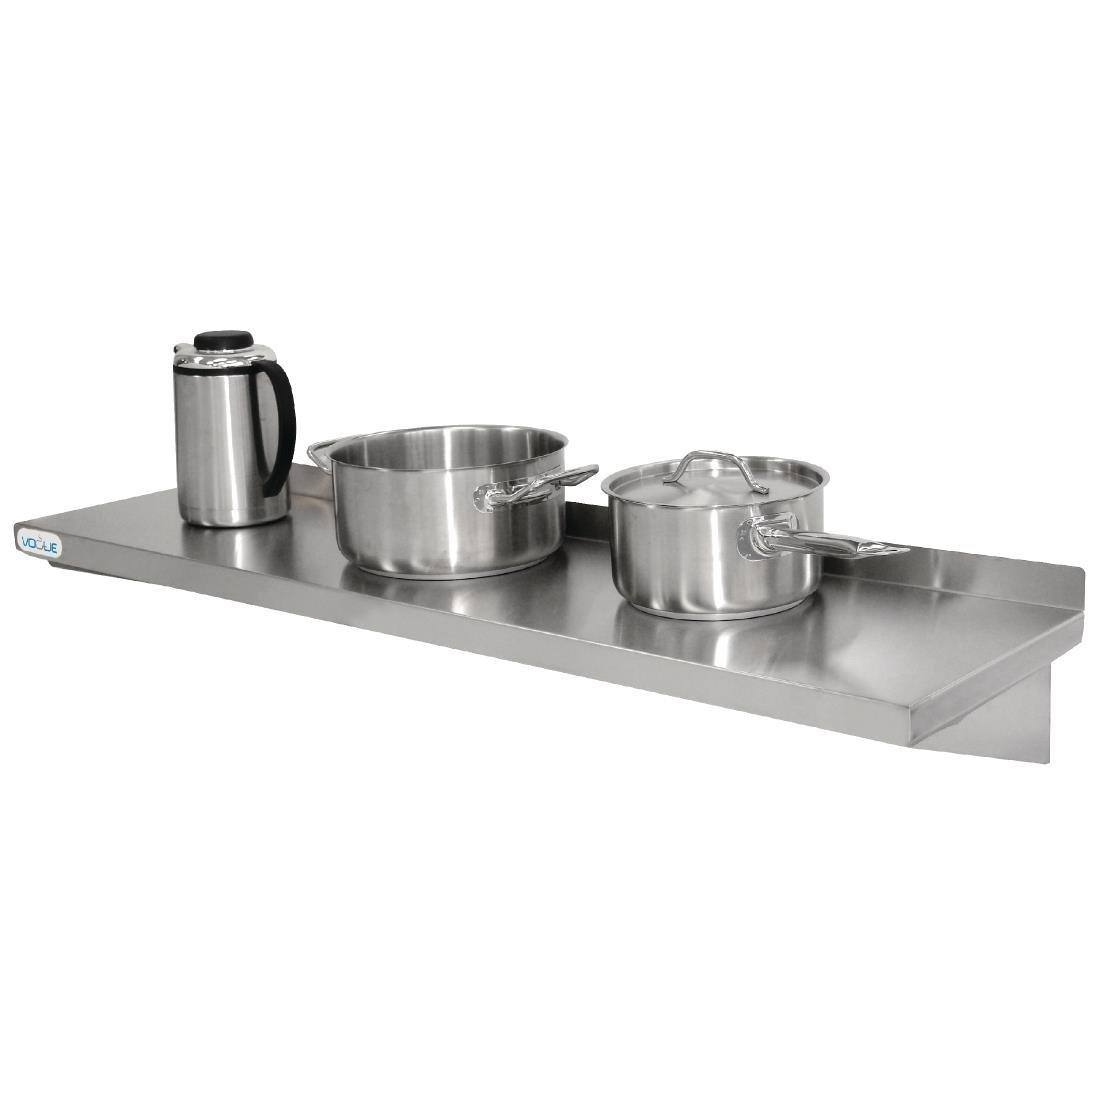 Y749 - Stainless Steel Kitchen Shelf